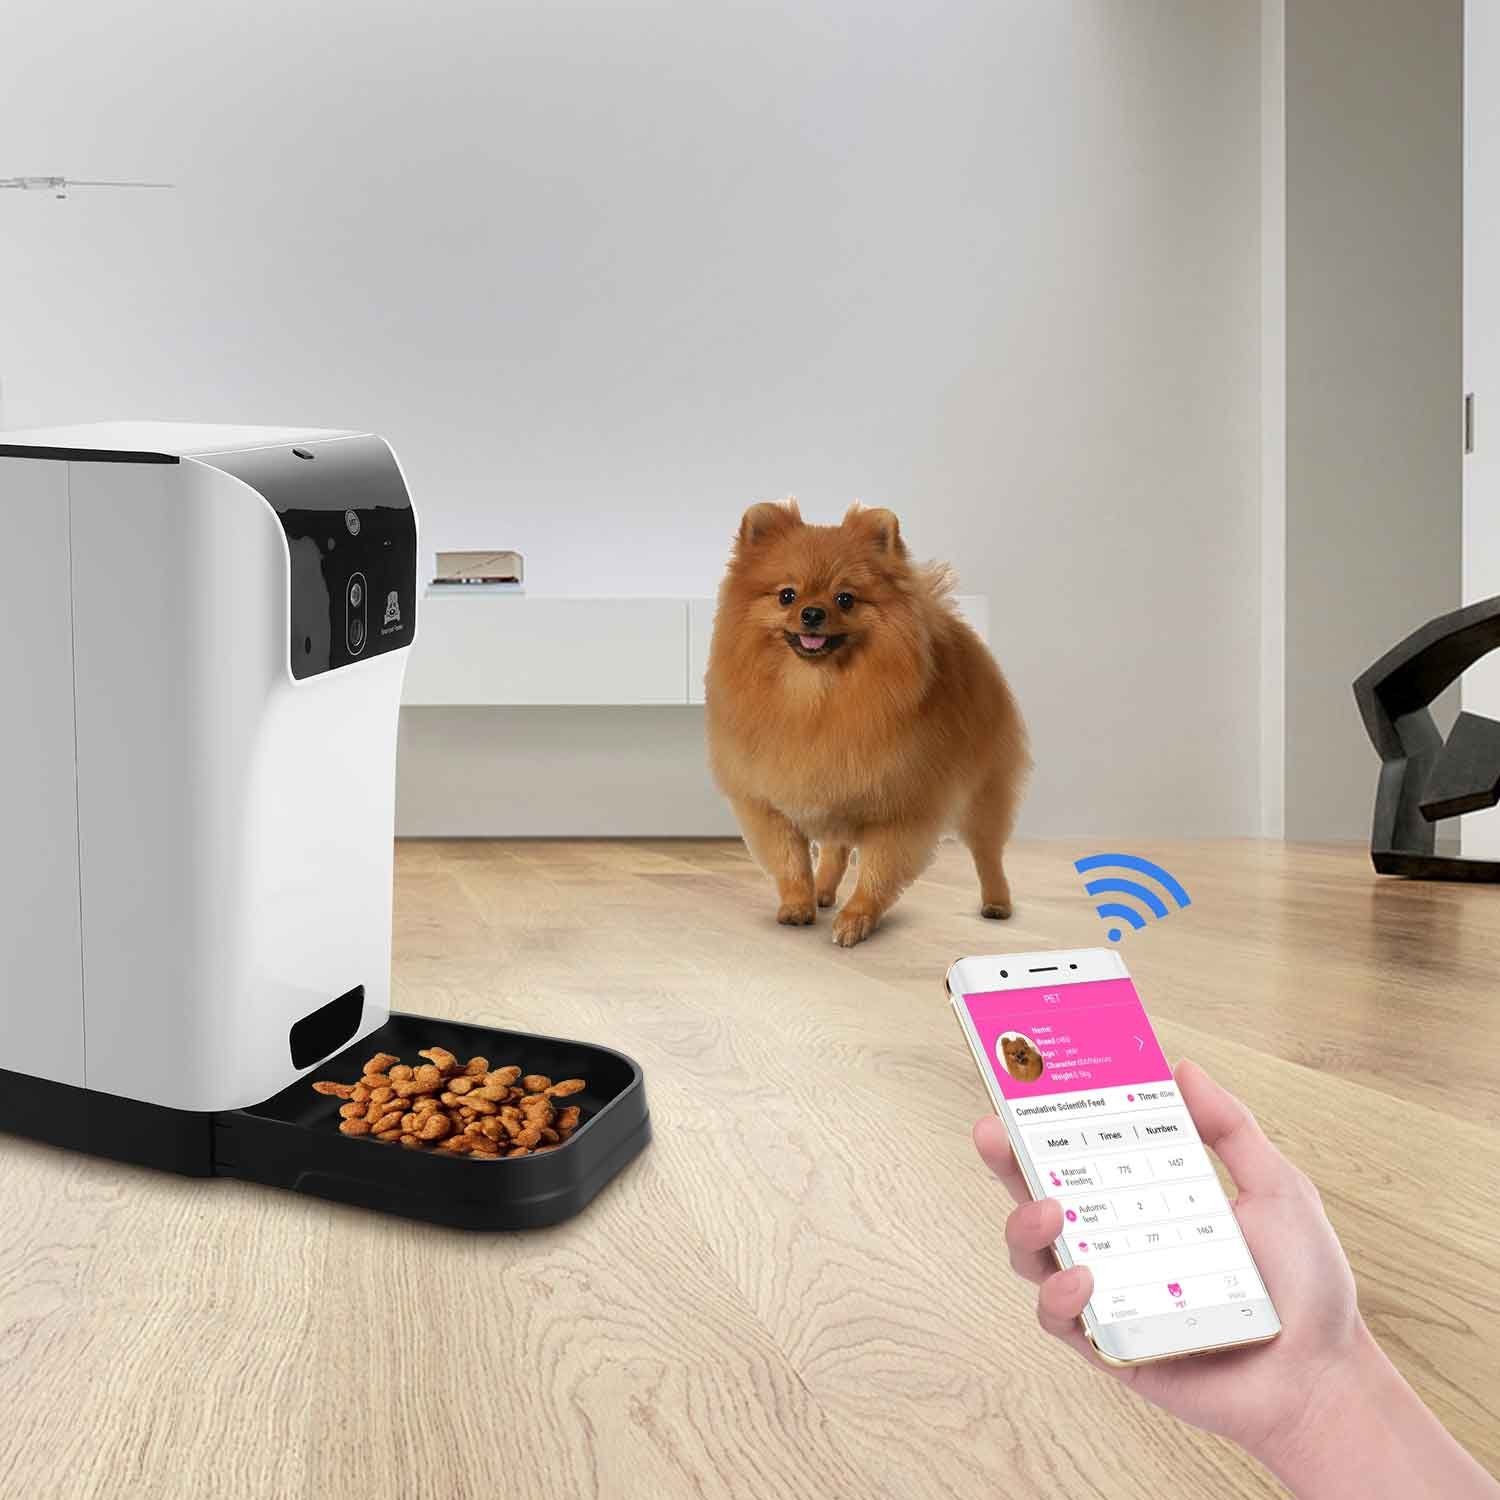 Flagup Smart Automatic Pet Feeder with Voice Recorder, Timer Programmable & HD Wifi Camera, Controlled by IPhone, Android or Other Smart Devices